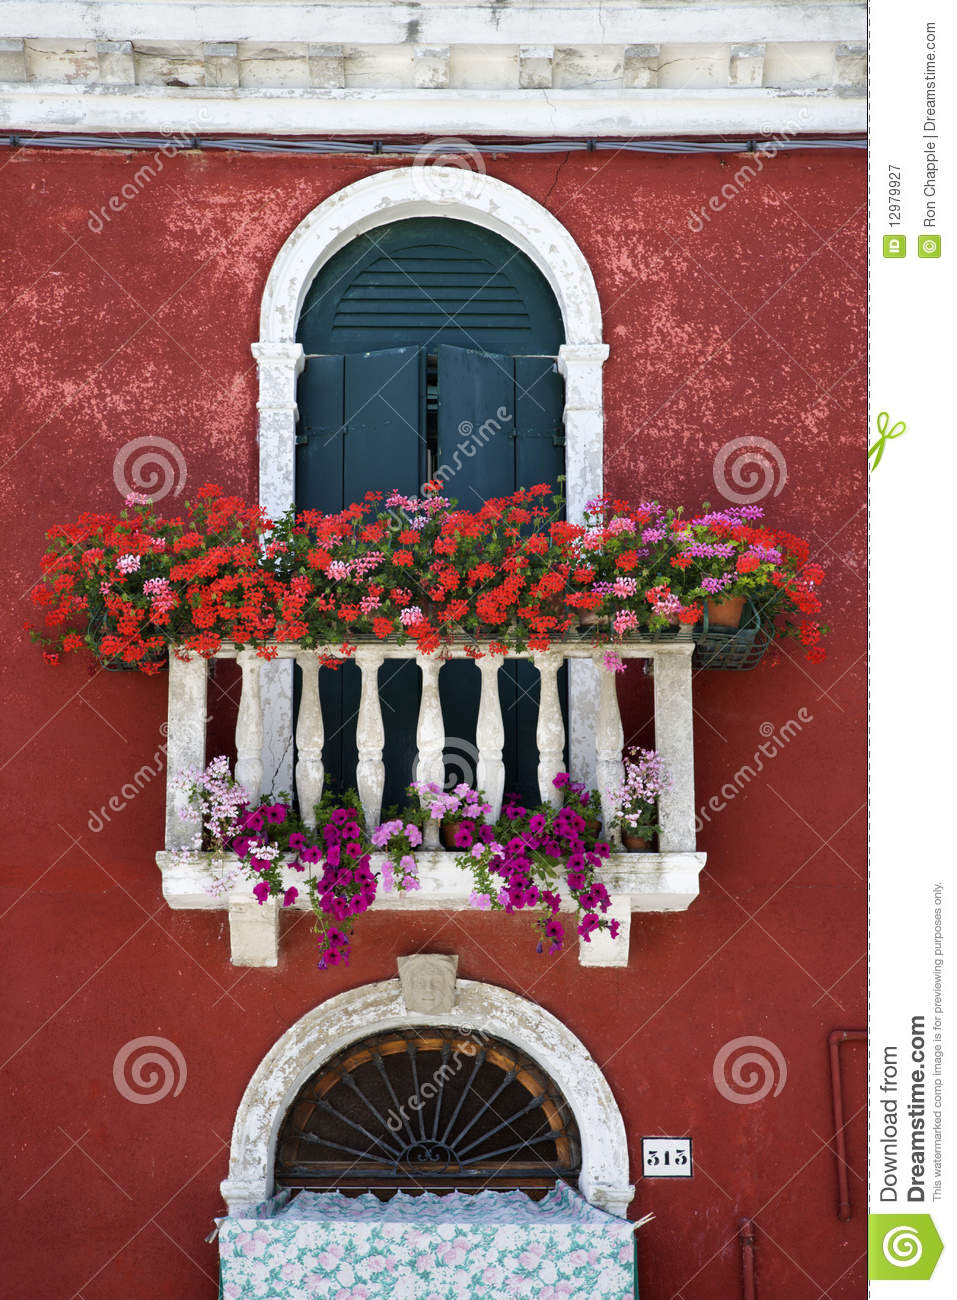 Arched window with balcony and flowers stock image - image: .